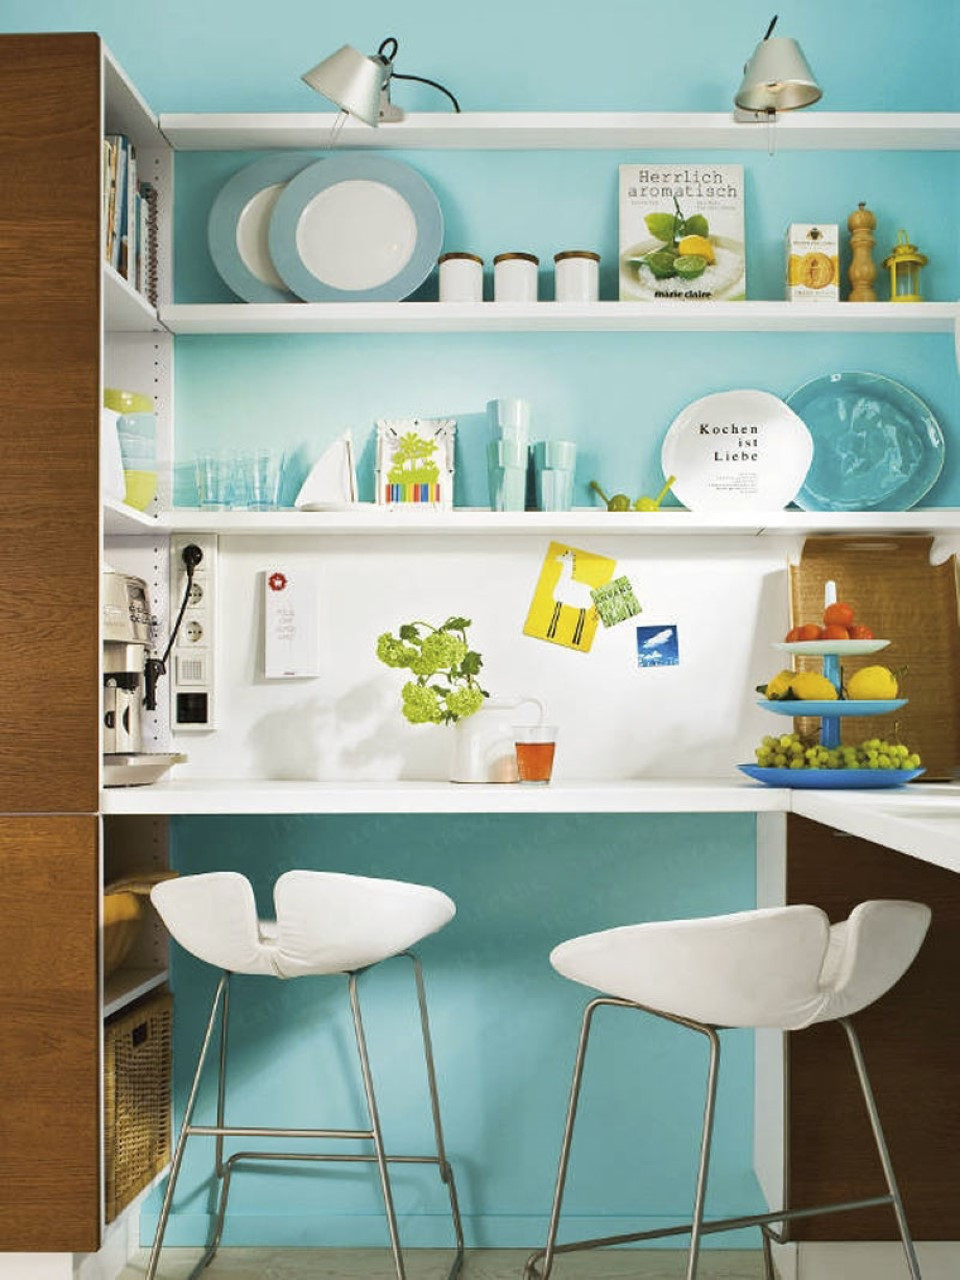 Best ideas about Aqua Kitchen Decor . Save or Pin 2015 Kitchen Ideas with Fascinating Wall Treatment Now.